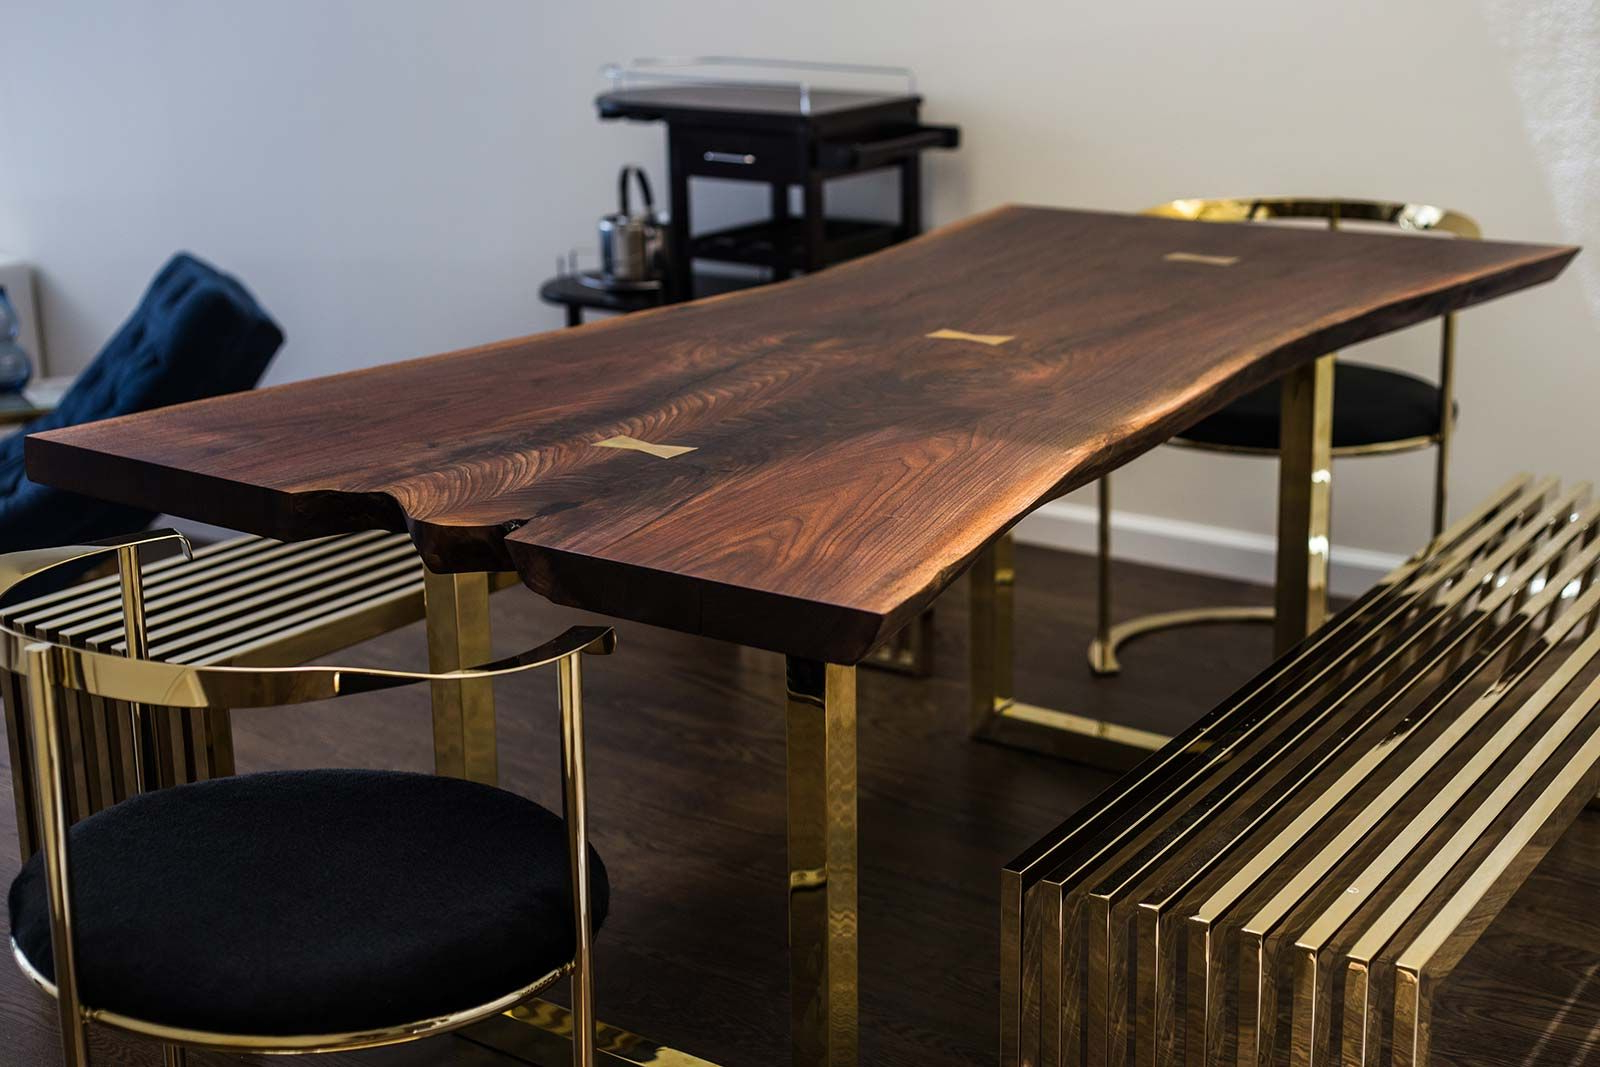 Preferred Black Walnut Dining Table With Brass Bowties Live Edge Wood For Walnut Finish Live Edge Wood Contemporary Dining Tables (View 18 of 30)